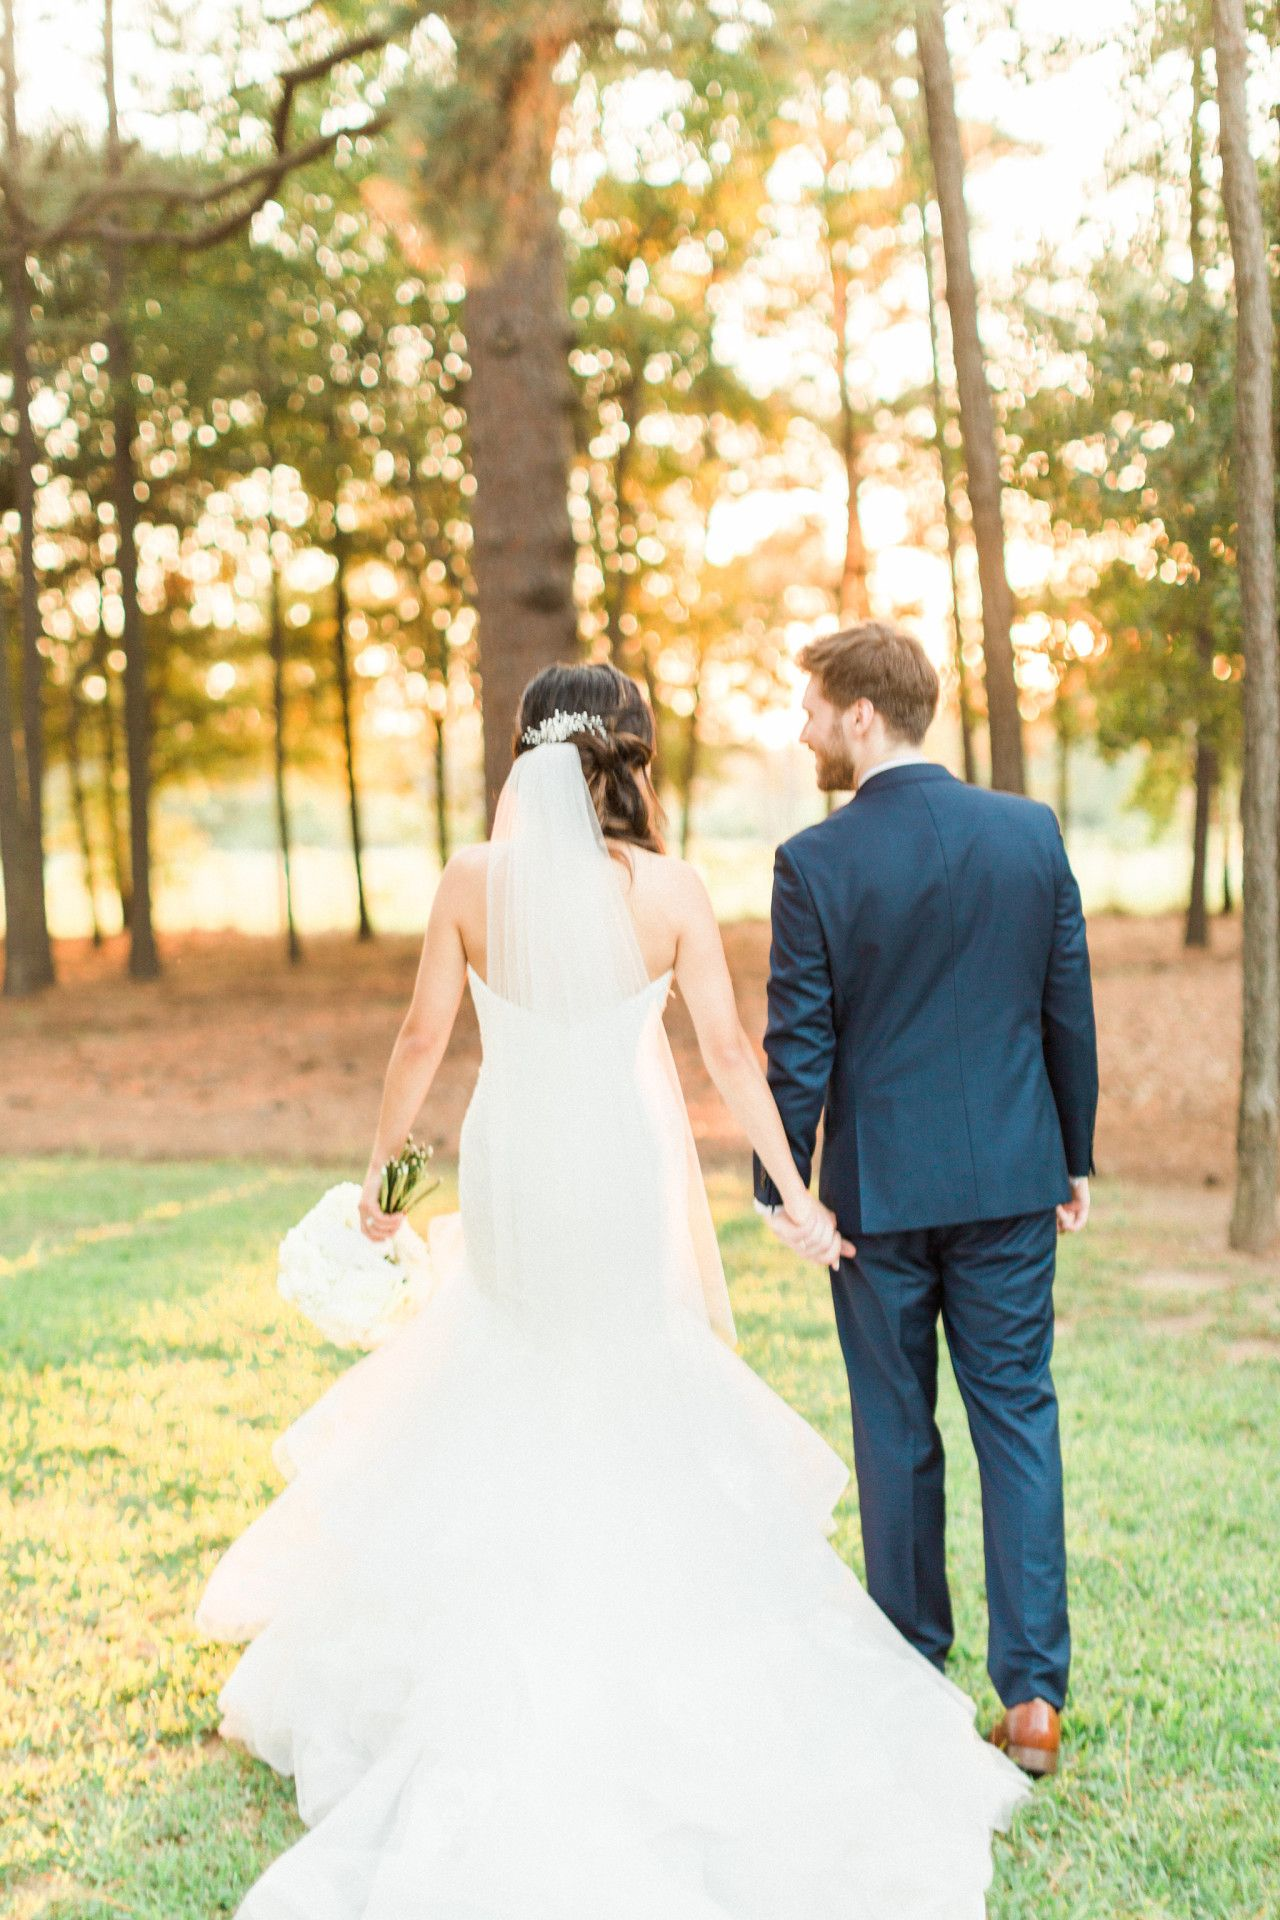 Bride groom golden hour wedding photos wedding photo ideas